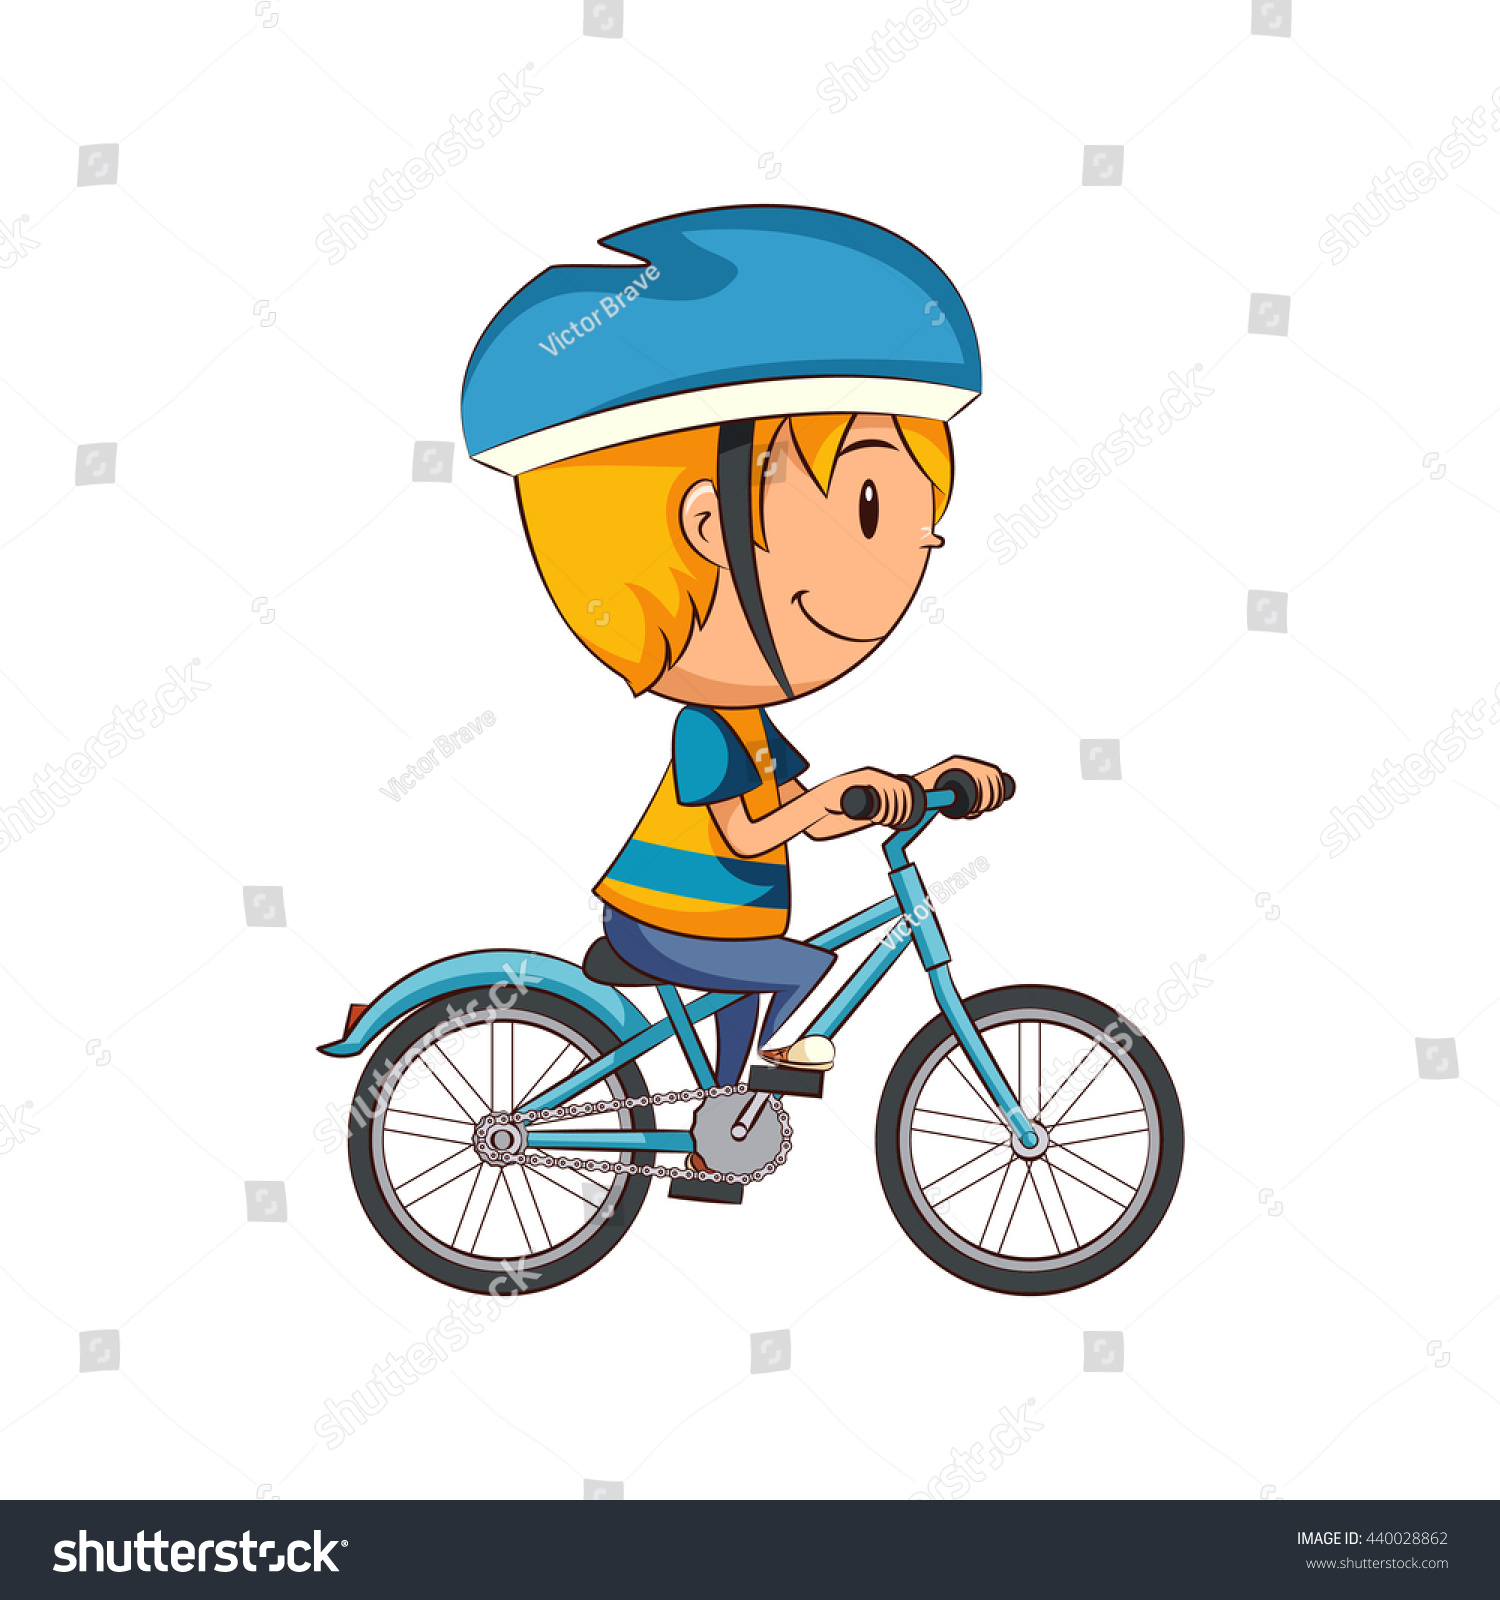 Similar Images Stock Photos Vectors Of Kid Riding Bike